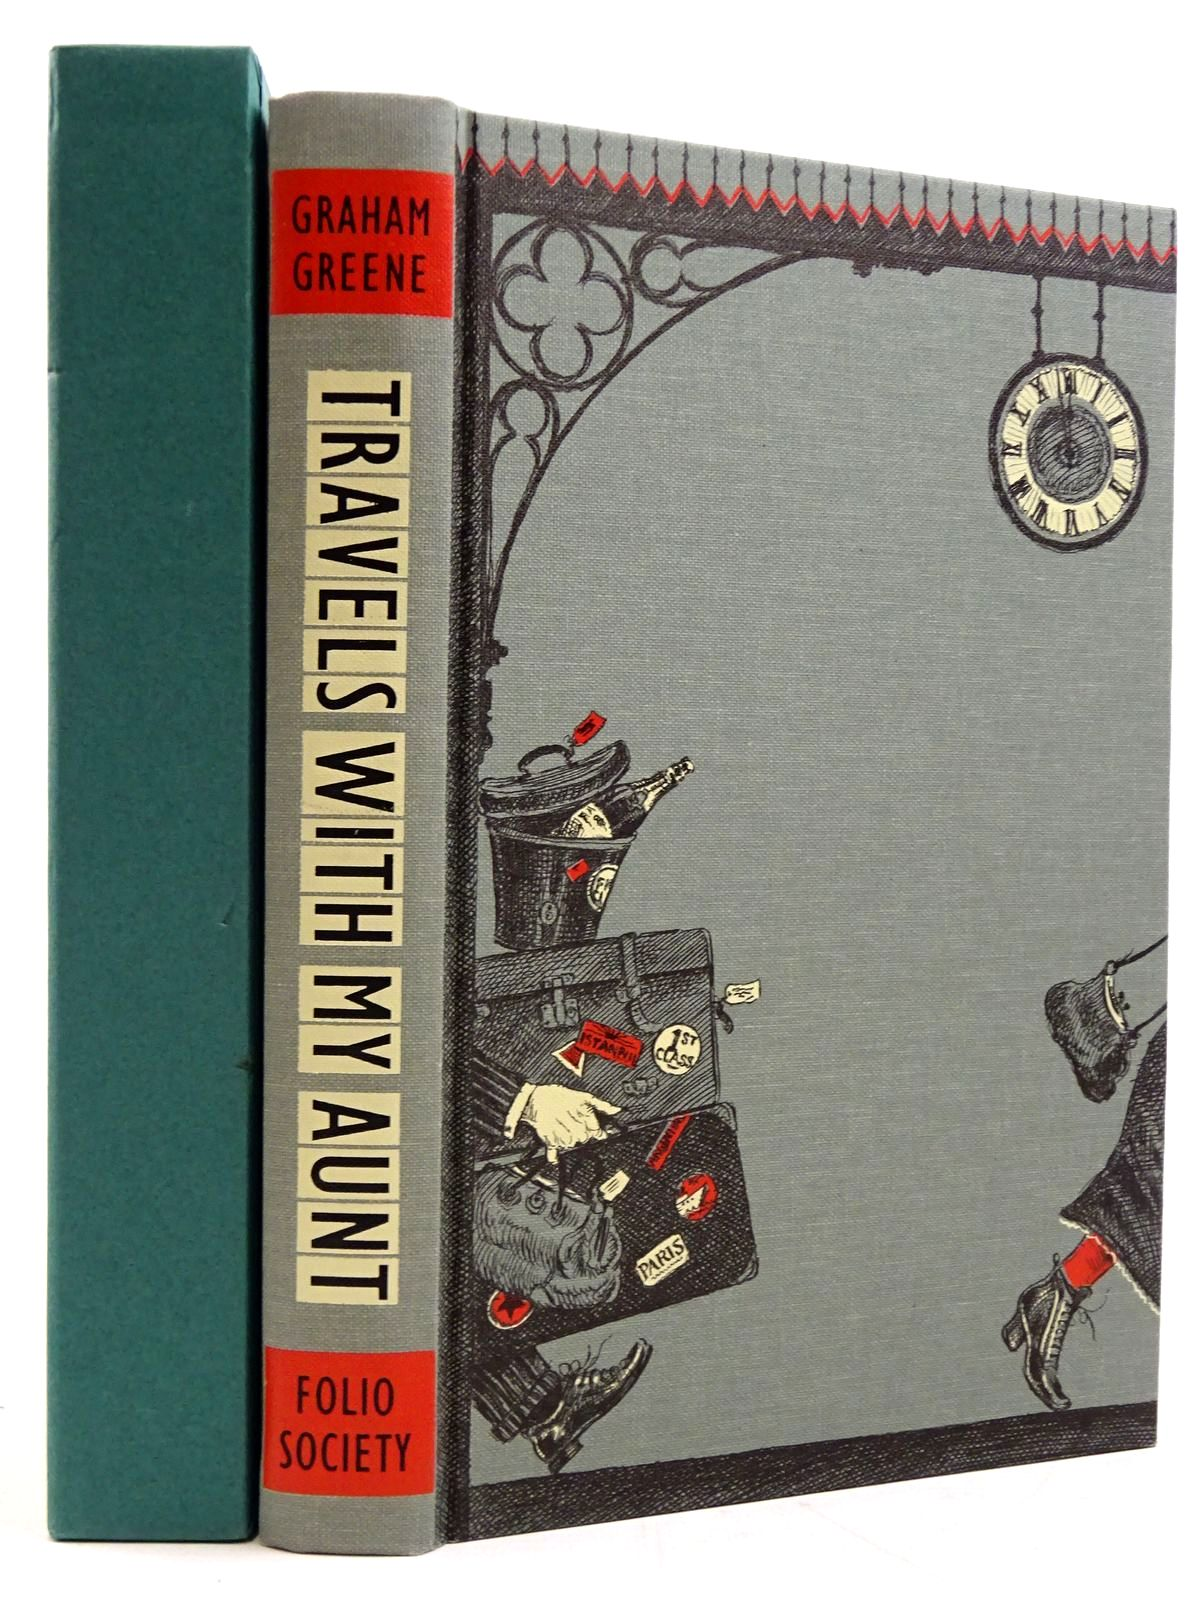 Photo of TRAVELS WITH MY AUNT: A NOVEL written by Greene, Graham illustrated by Holder, John published by Folio Society (STOCK CODE: 2131296)  for sale by Stella & Rose's Books